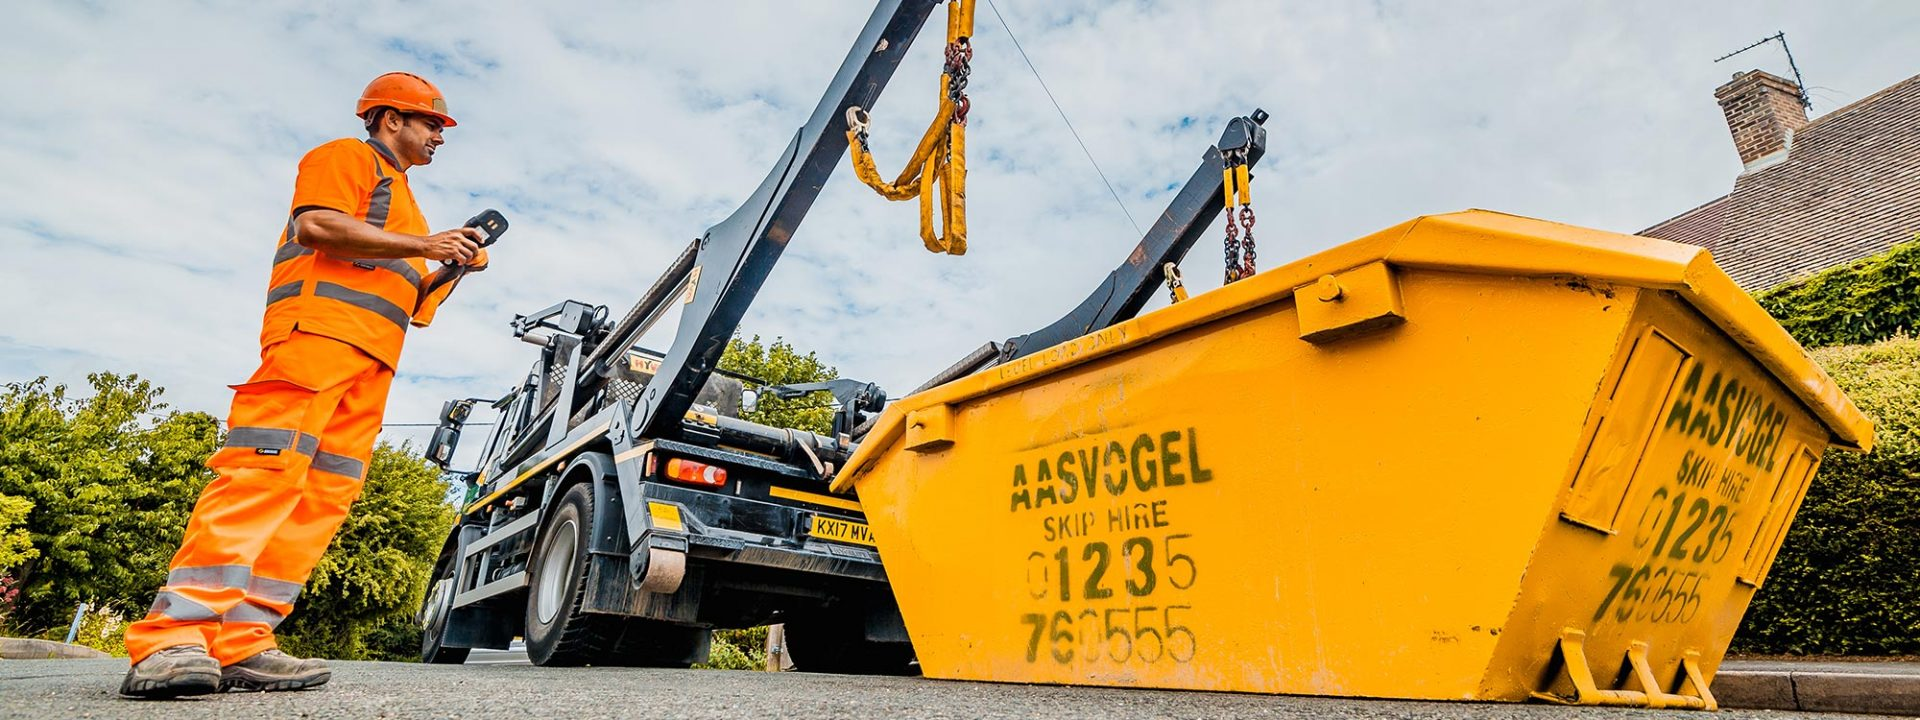 Skip Hire Next Day Delivery Amp Free Quote Aasvogel